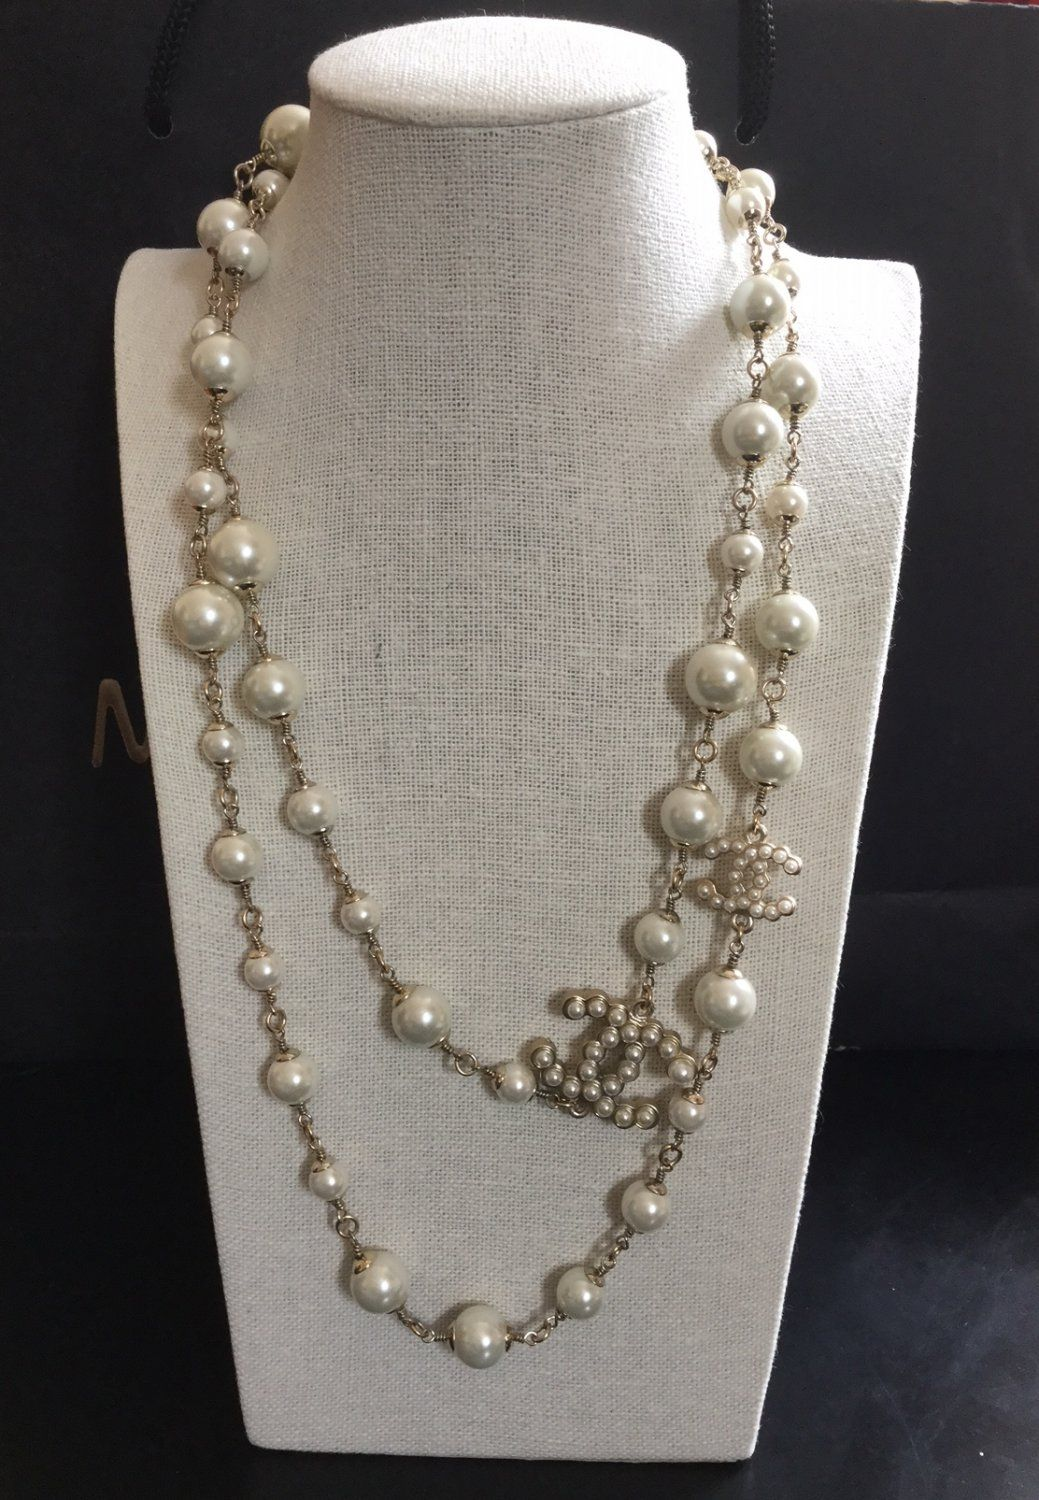 44ce4d40f7dd6 CHANEL+2+Double-Sided+CC+Pearl+Necklace+RUNWAY+CC+Gold+Chain+ ...